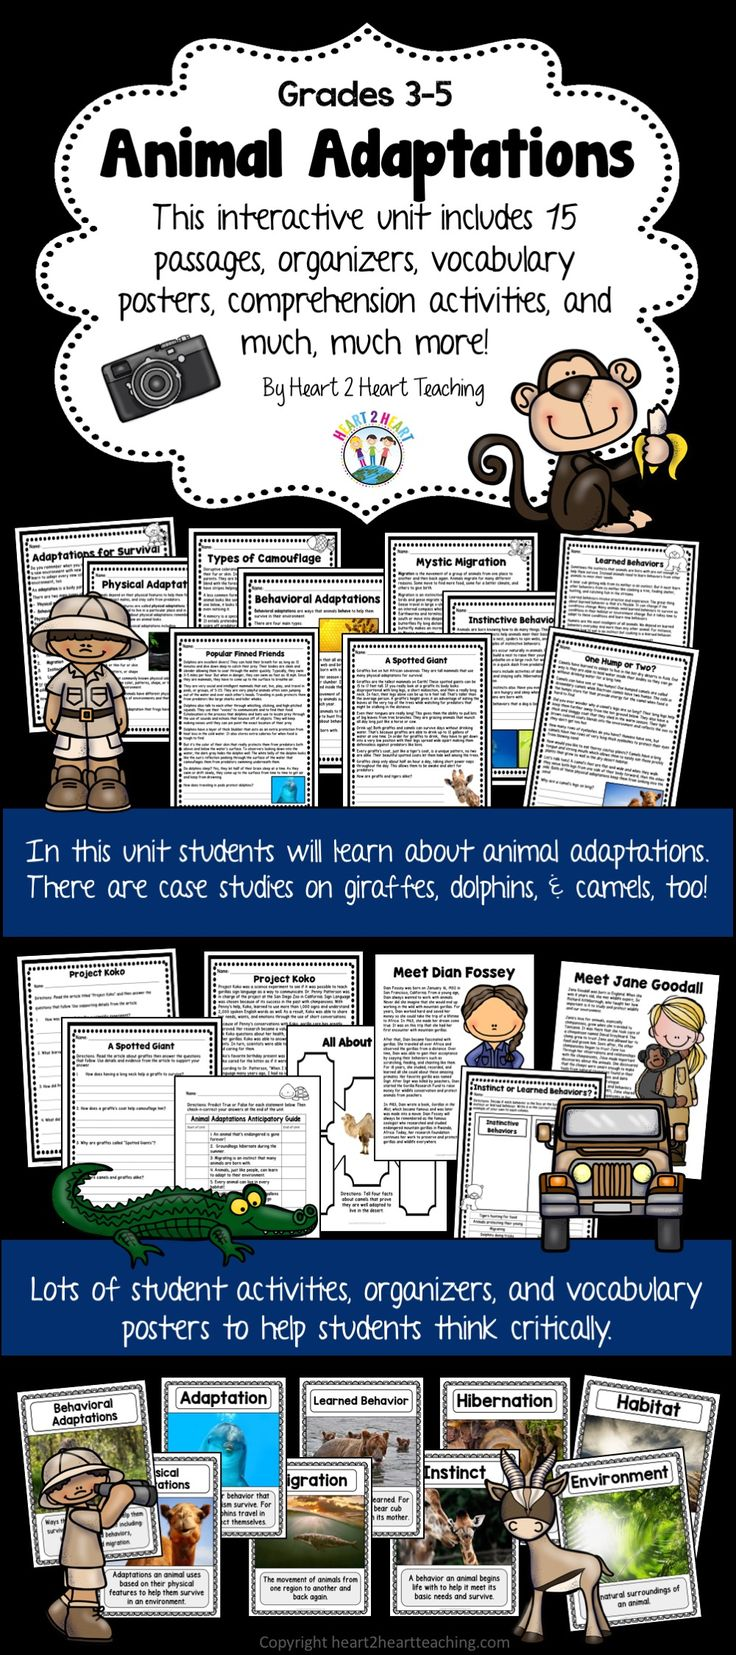 In this pack you'll find 15 passages, comprehension and connection activities, vocabulary posters, case studies on giraffes, camels, and dolphins, writing activities, and so much more! You will love this kid-friendly, interactive unit packed full of student-centered activities!